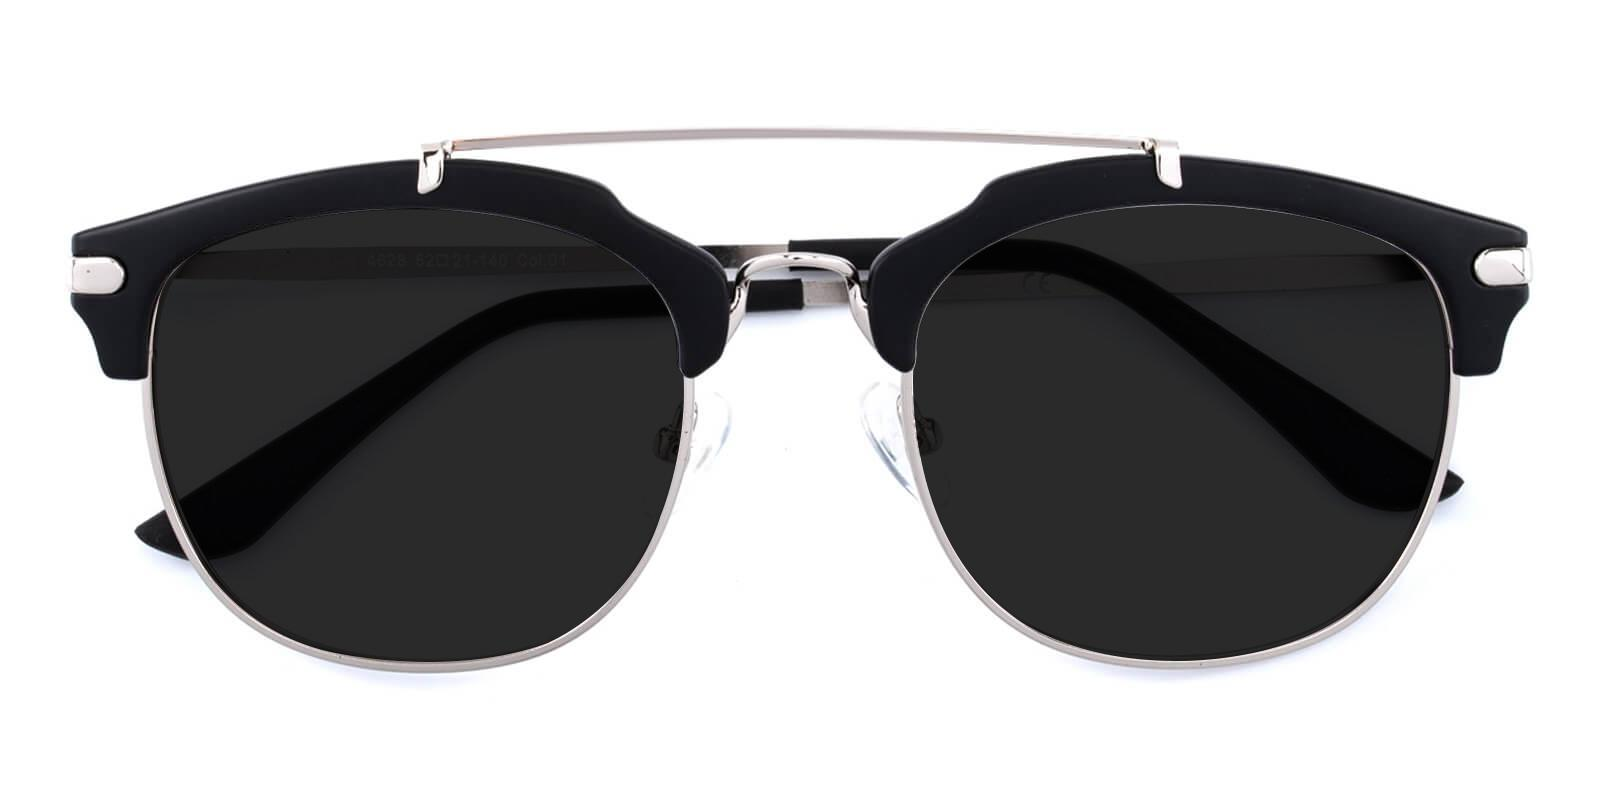 Icychem-Black-Browline-Acetate-Sunglasses-detail